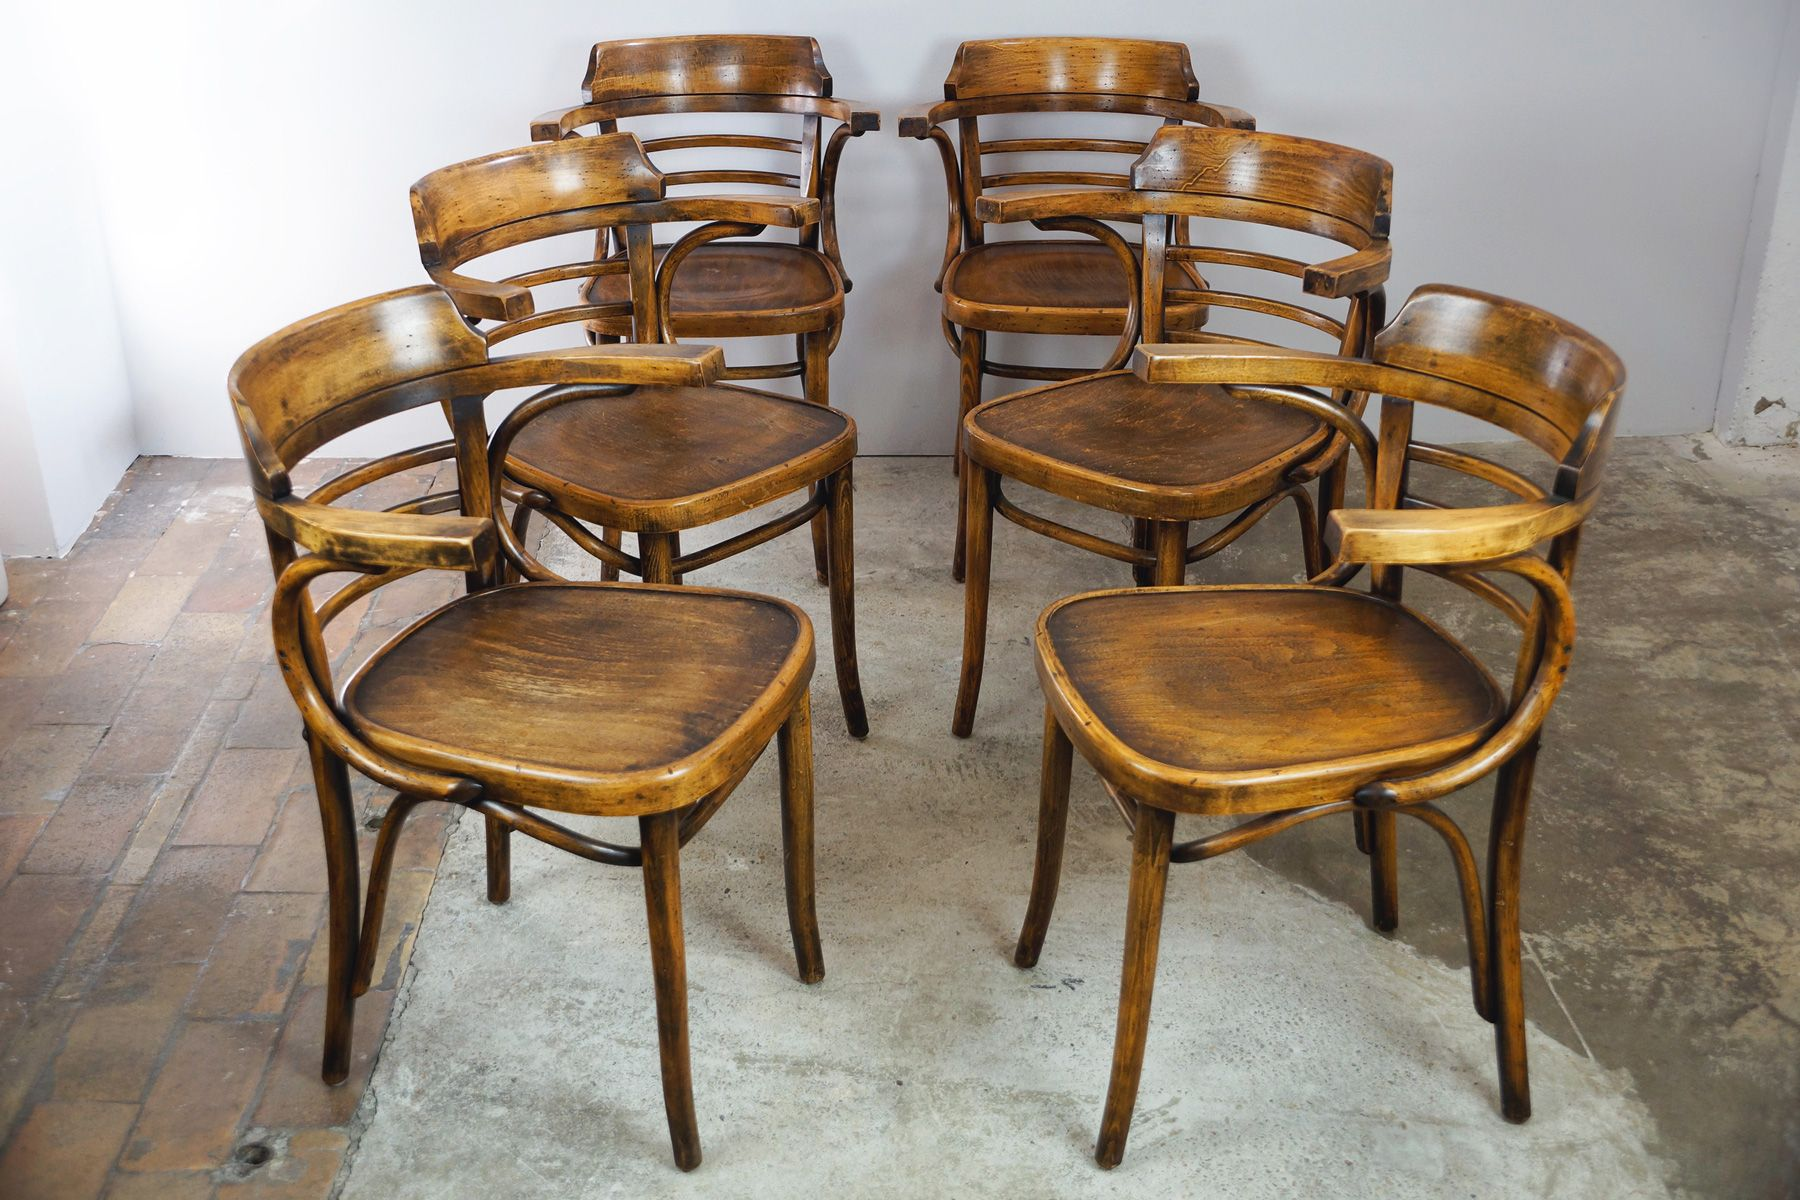 Belgian Bentwood Chairs 1980s Set of 6 for sale at Pamono